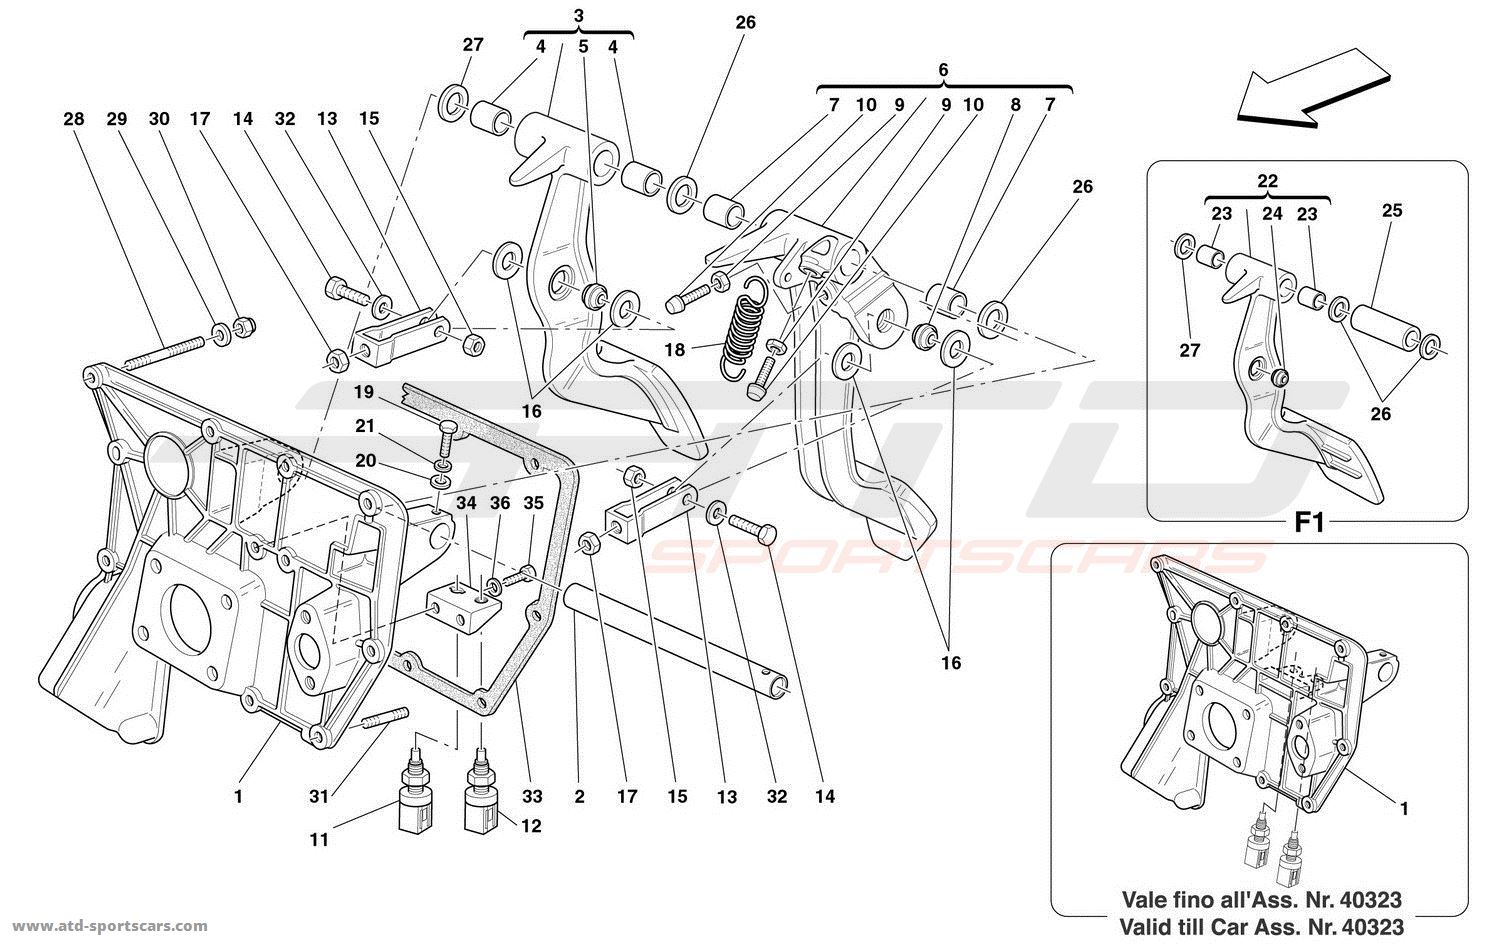 Ferrari 360 Spider Interior Parts At Atd Sportscars